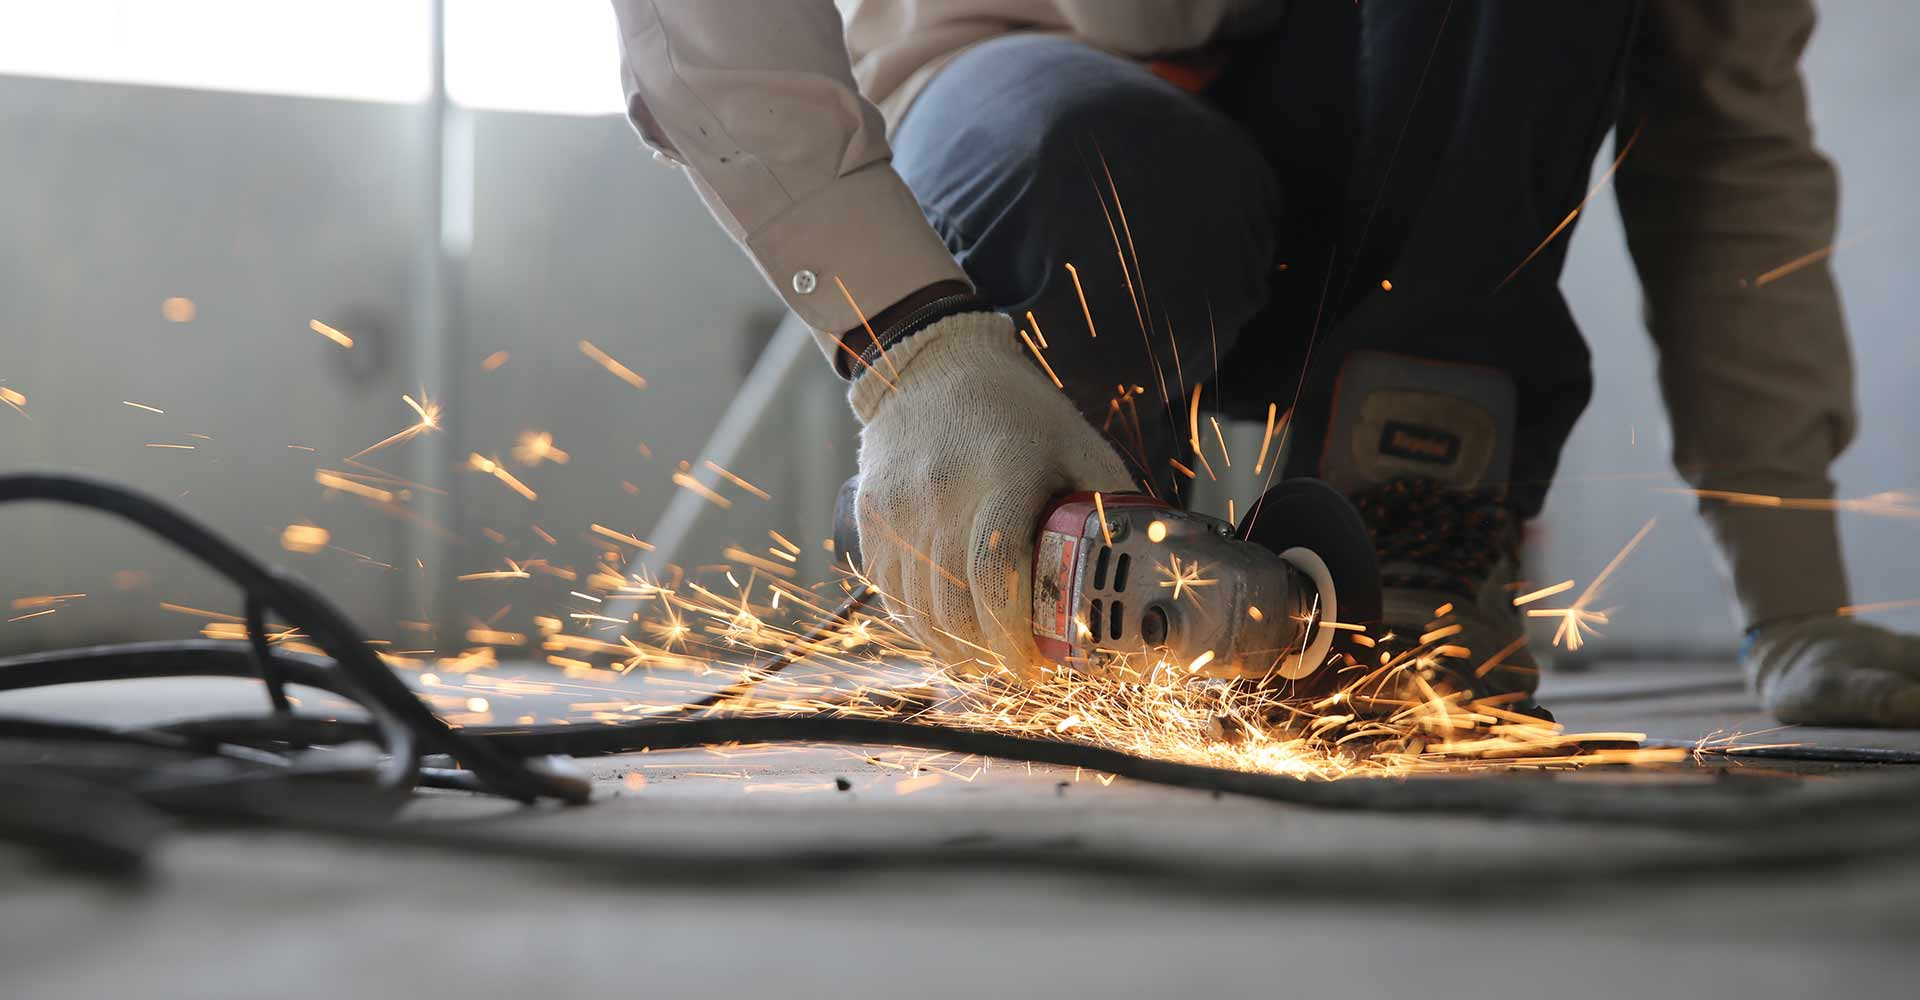 Workers Compensation Attorneys - Hearing Loss